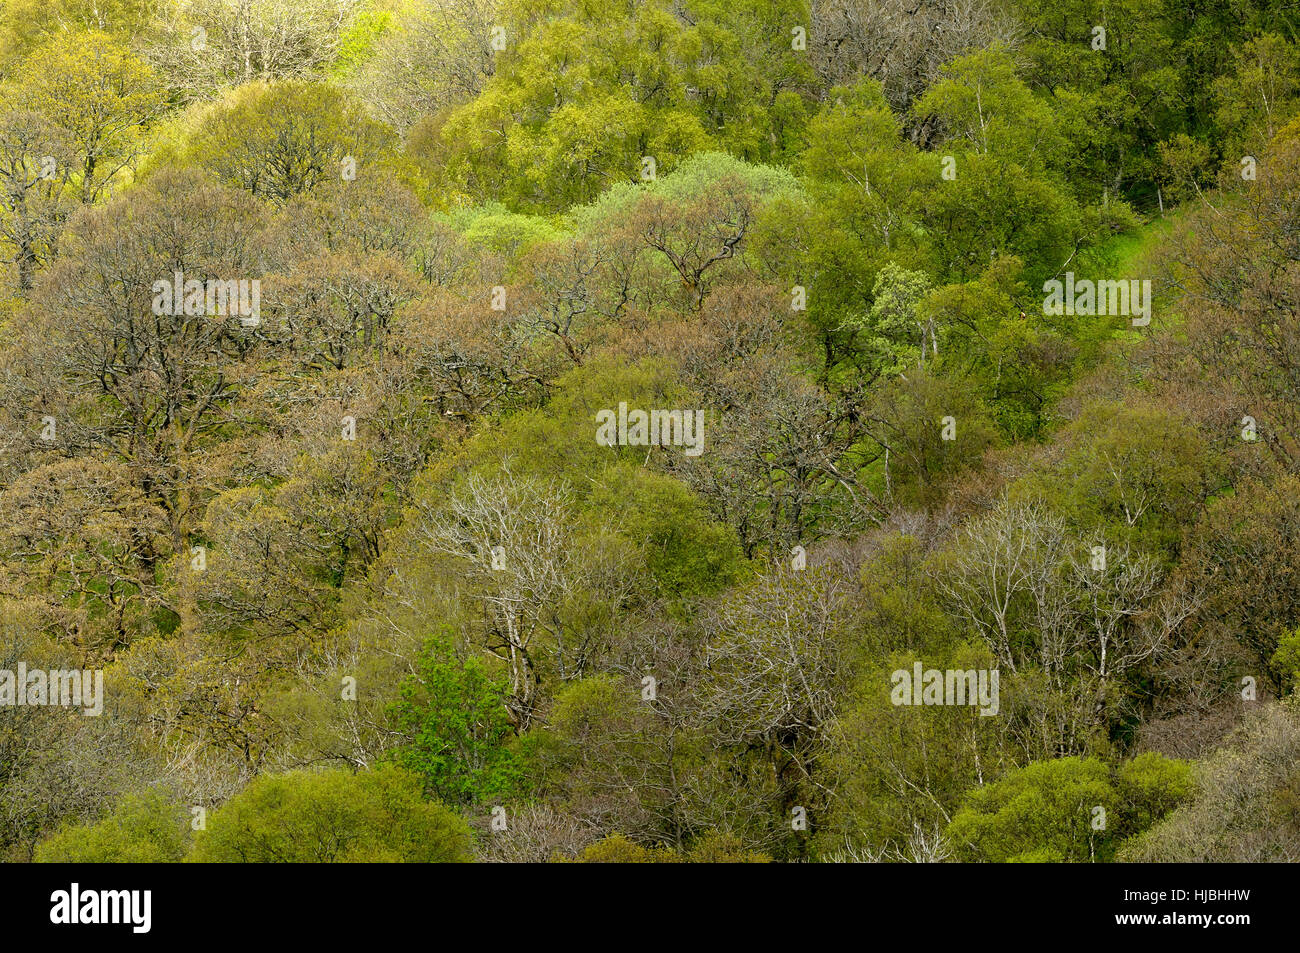 Mixed deciduous woodland in spring. Gilfach nature reserve, Radnorshire, Wales. May. - Stock Image